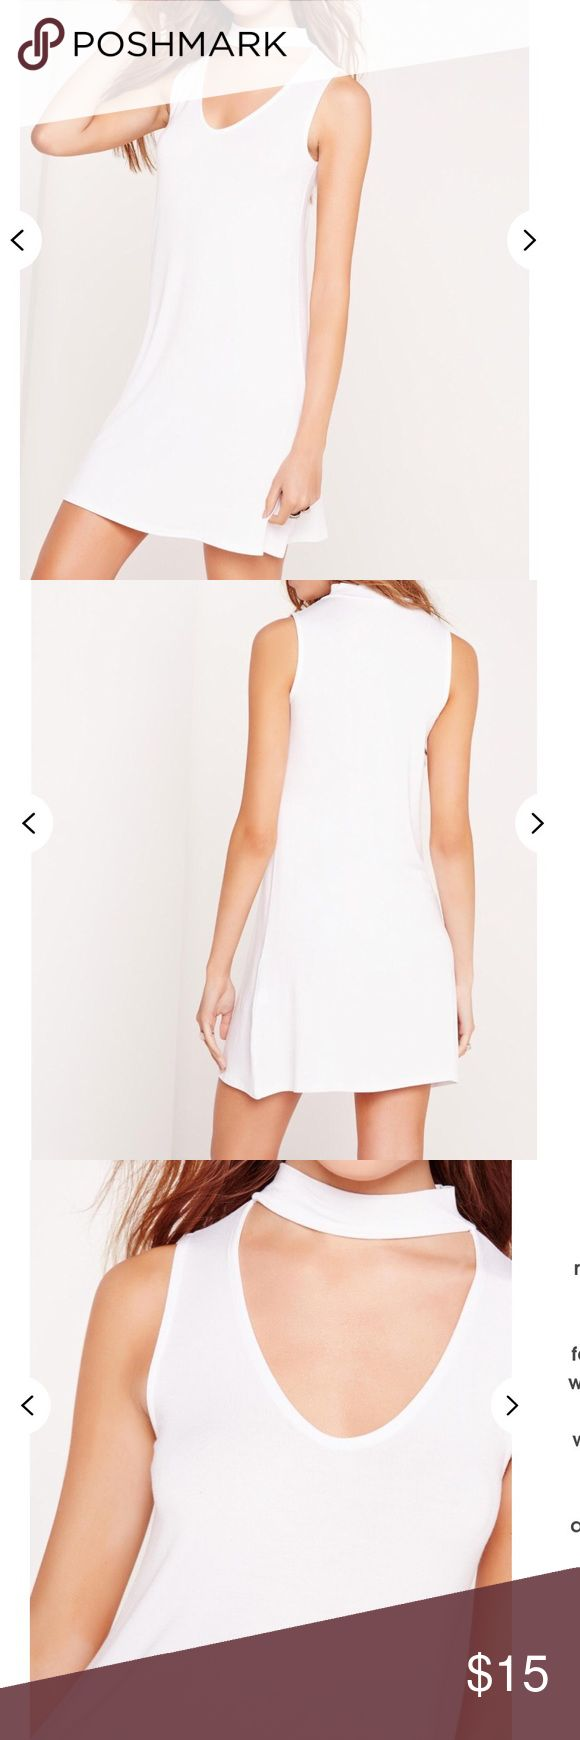 Choker neck jersey white dress Size 6. Sleeveless, all white. Loose fitting. Missguided Dresses Midi